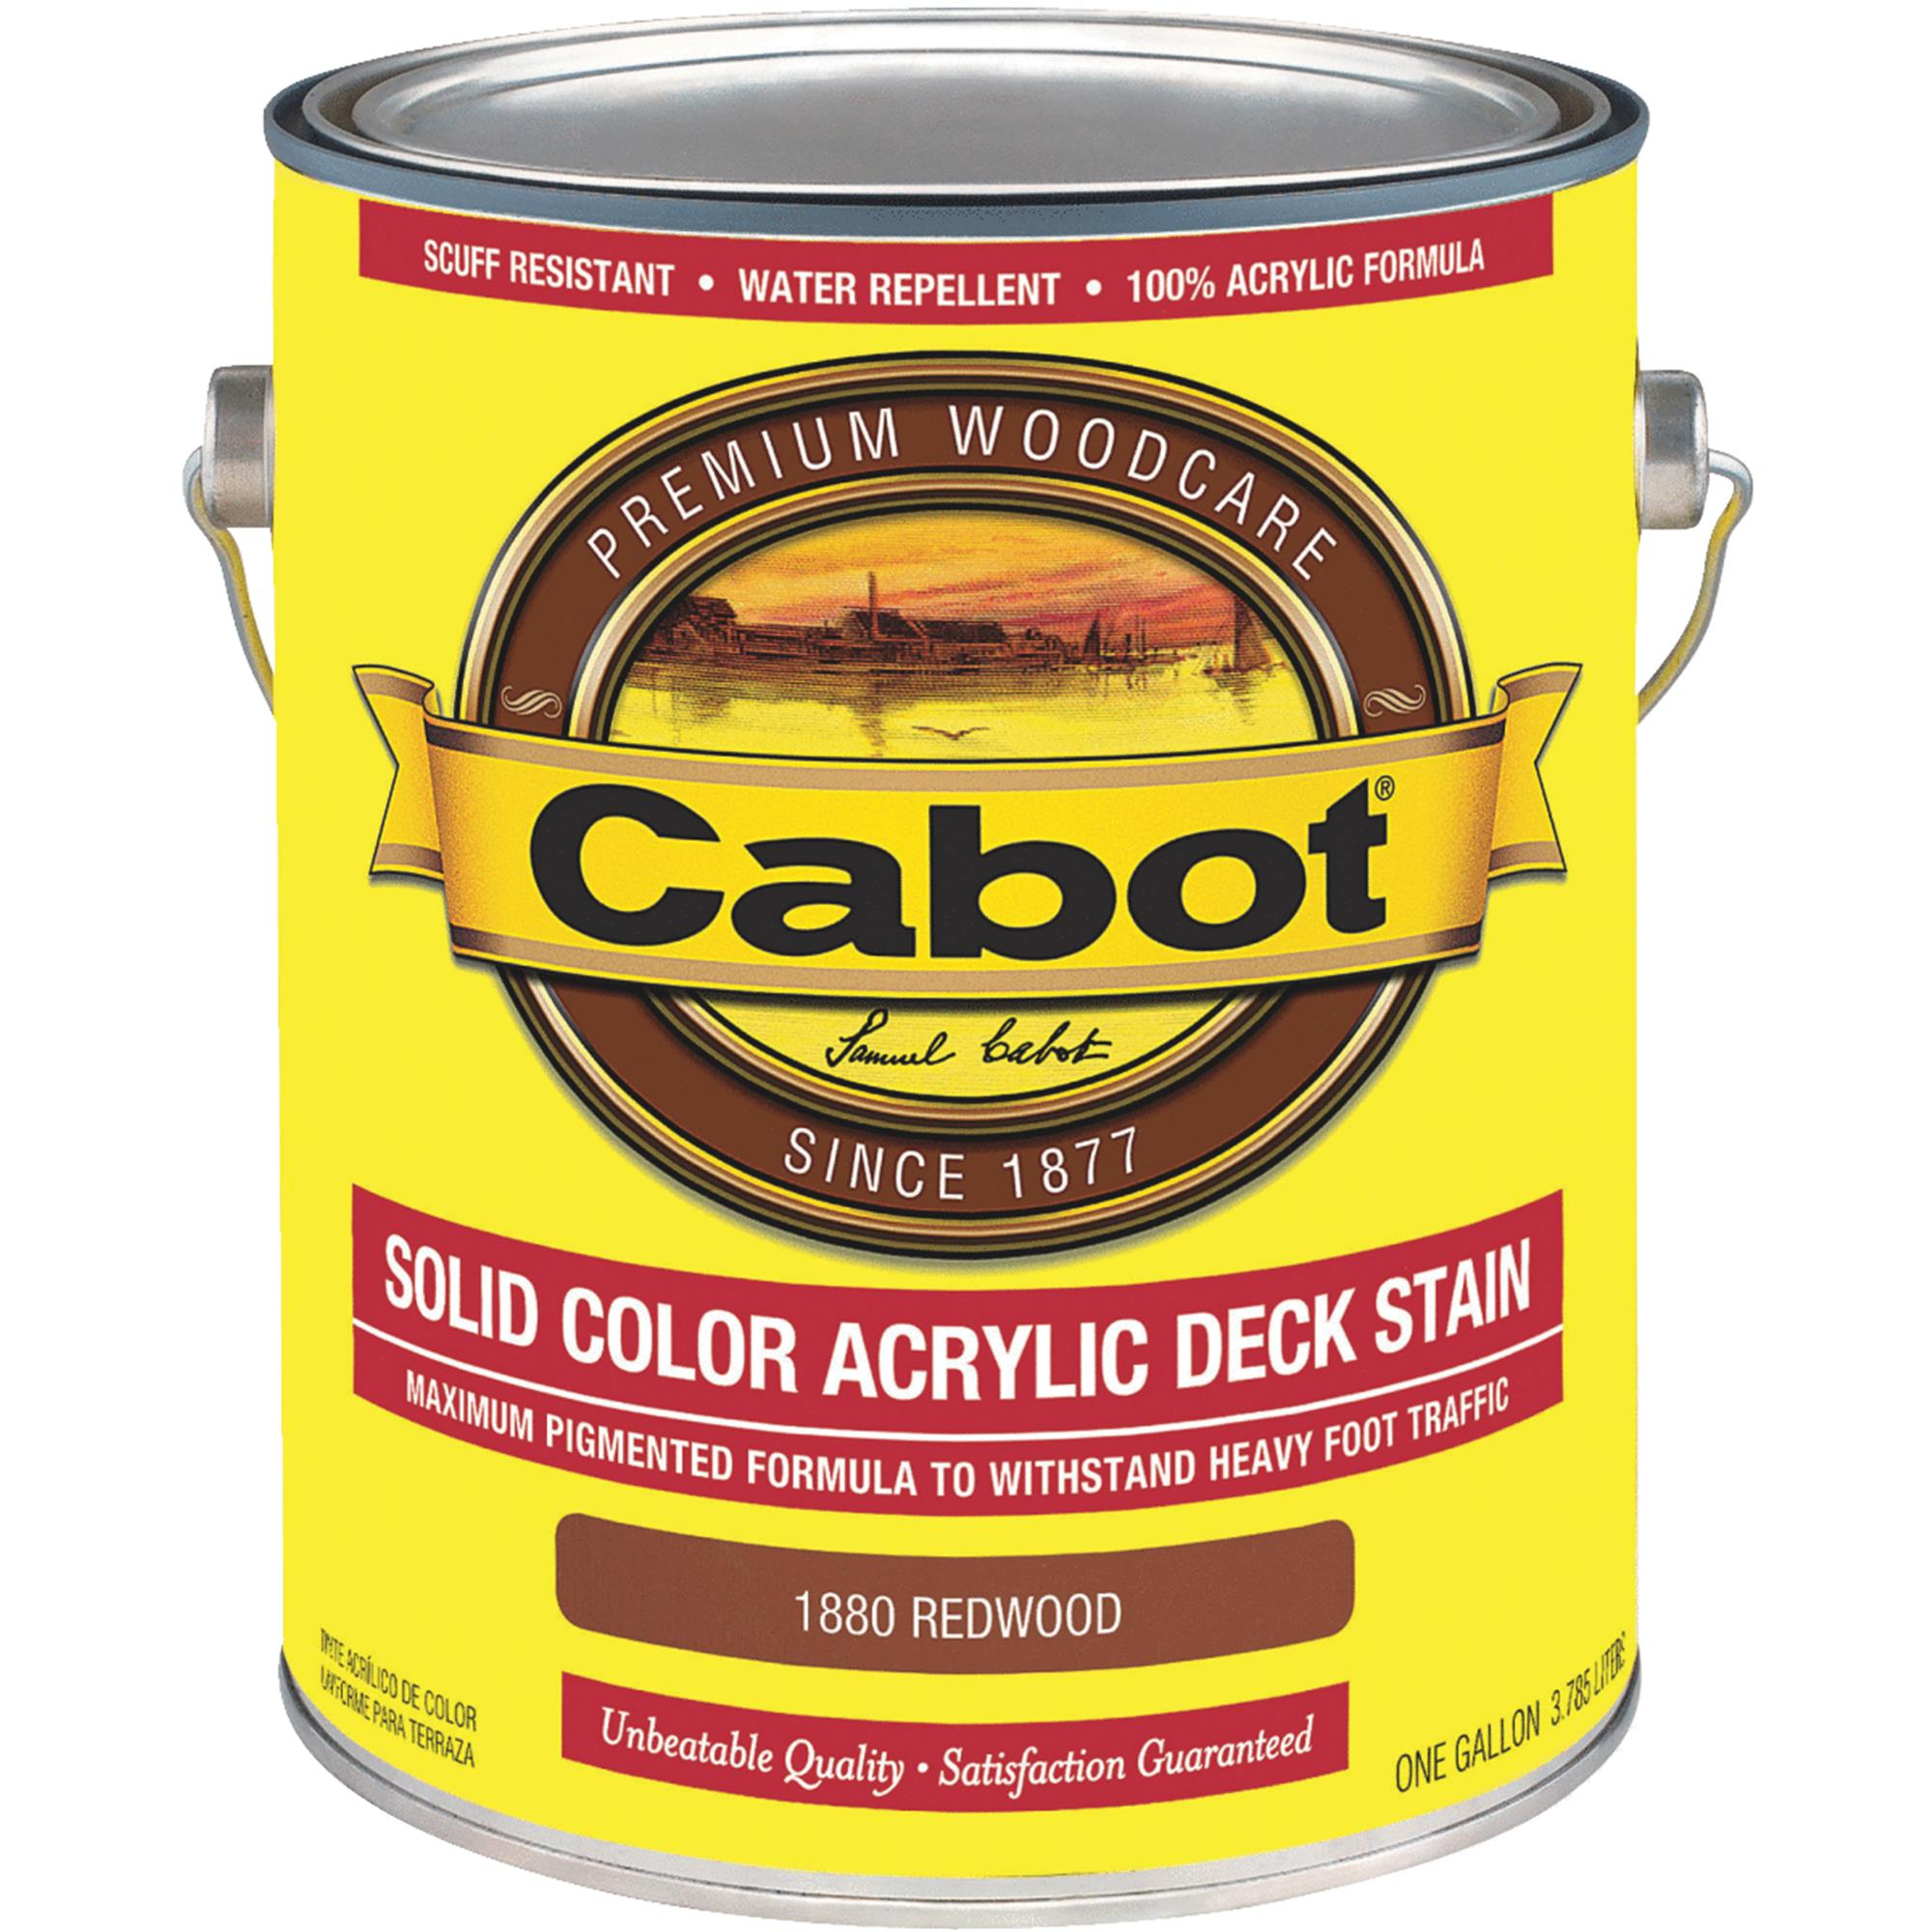 Cabot Solid Color Acrylic Deck Stain